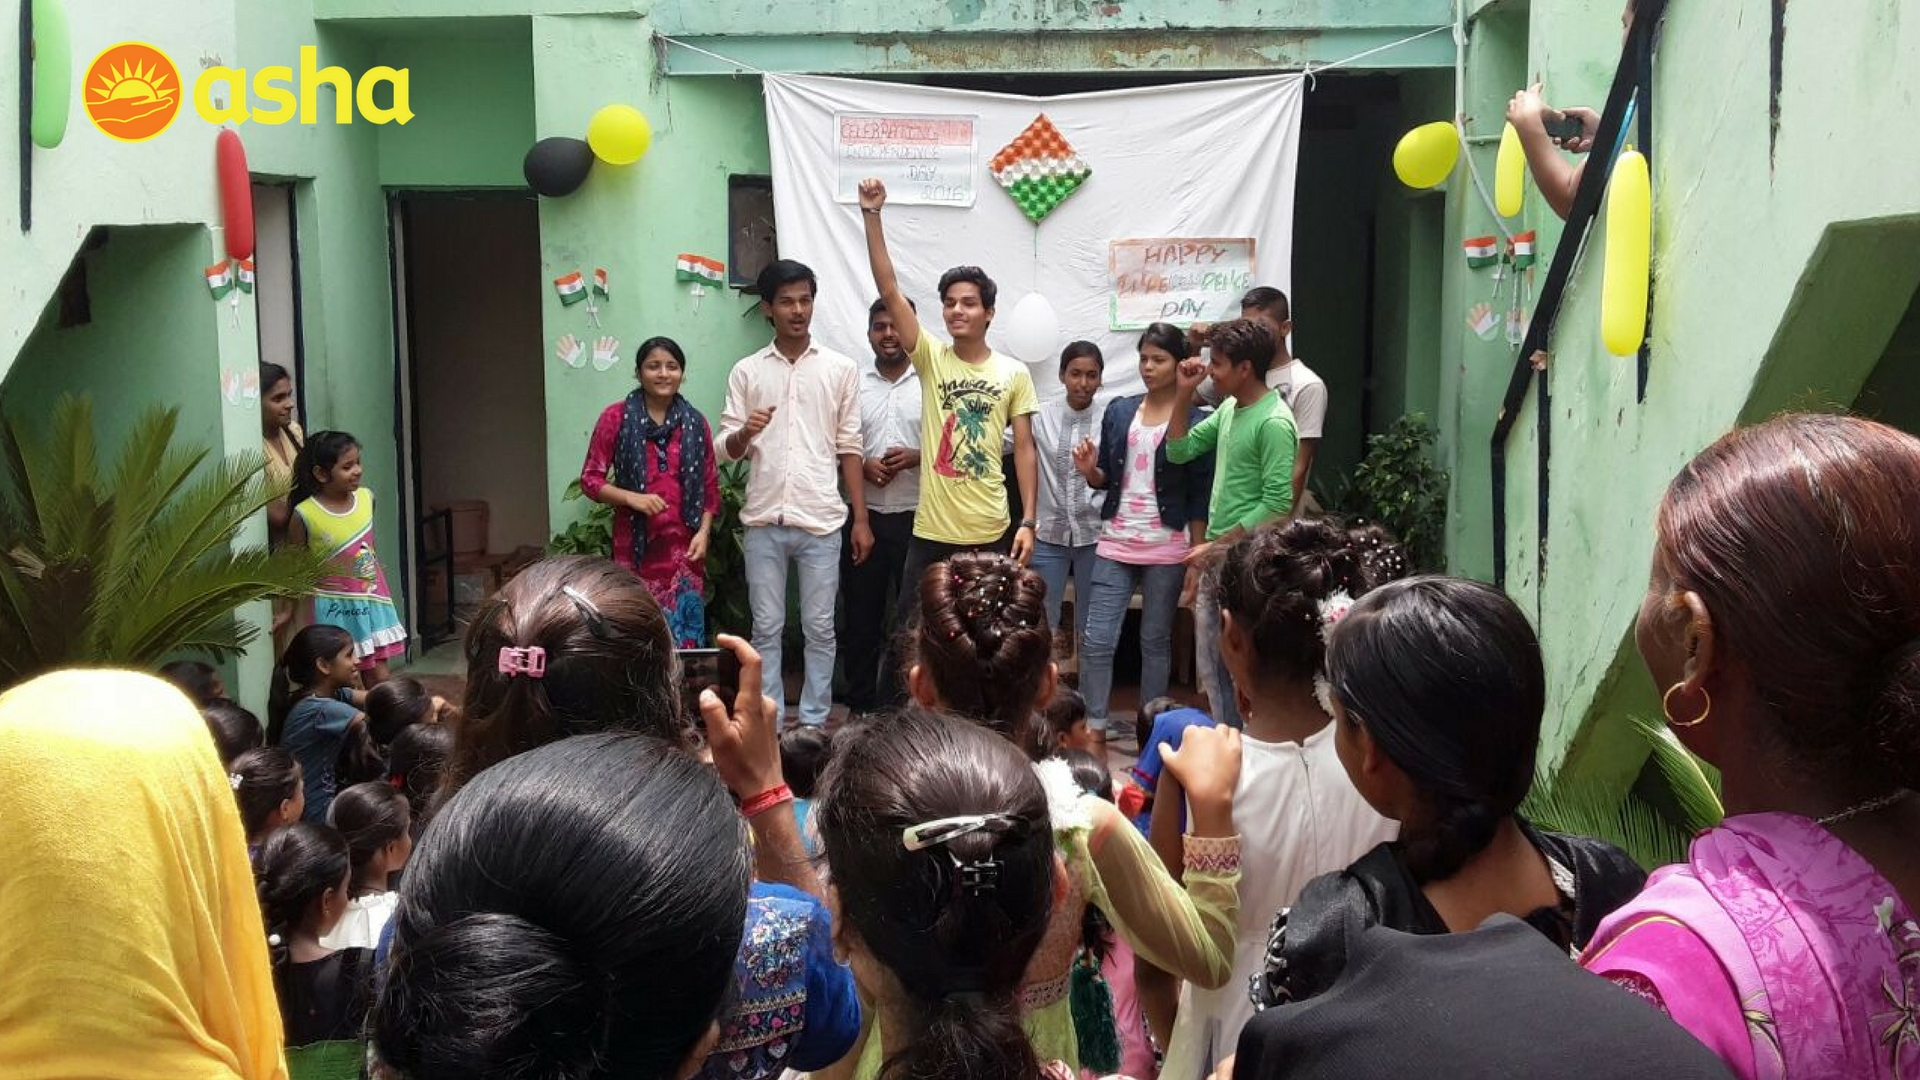 Asha college students enacting a play at Kalkaji centre while the Children and Women's Association cheer for them.